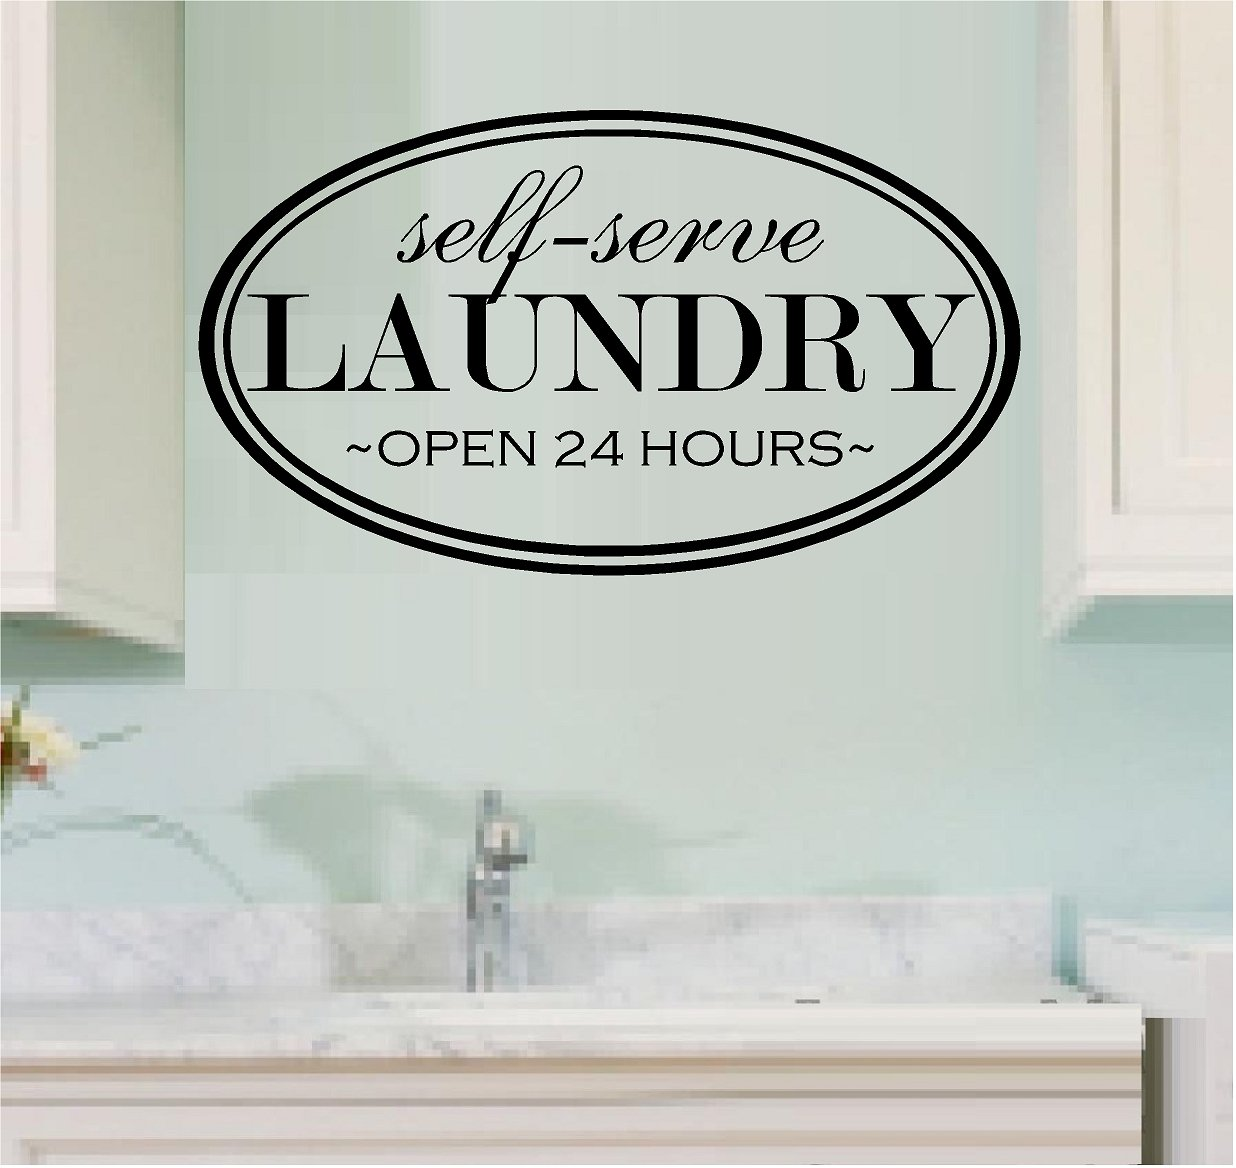 Amazon wall decal vinyl lettering self serve laundry open 24 amazon wall decal vinyl lettering self serve laundry open 24 hours laundry room home kitchen amipublicfo Gallery